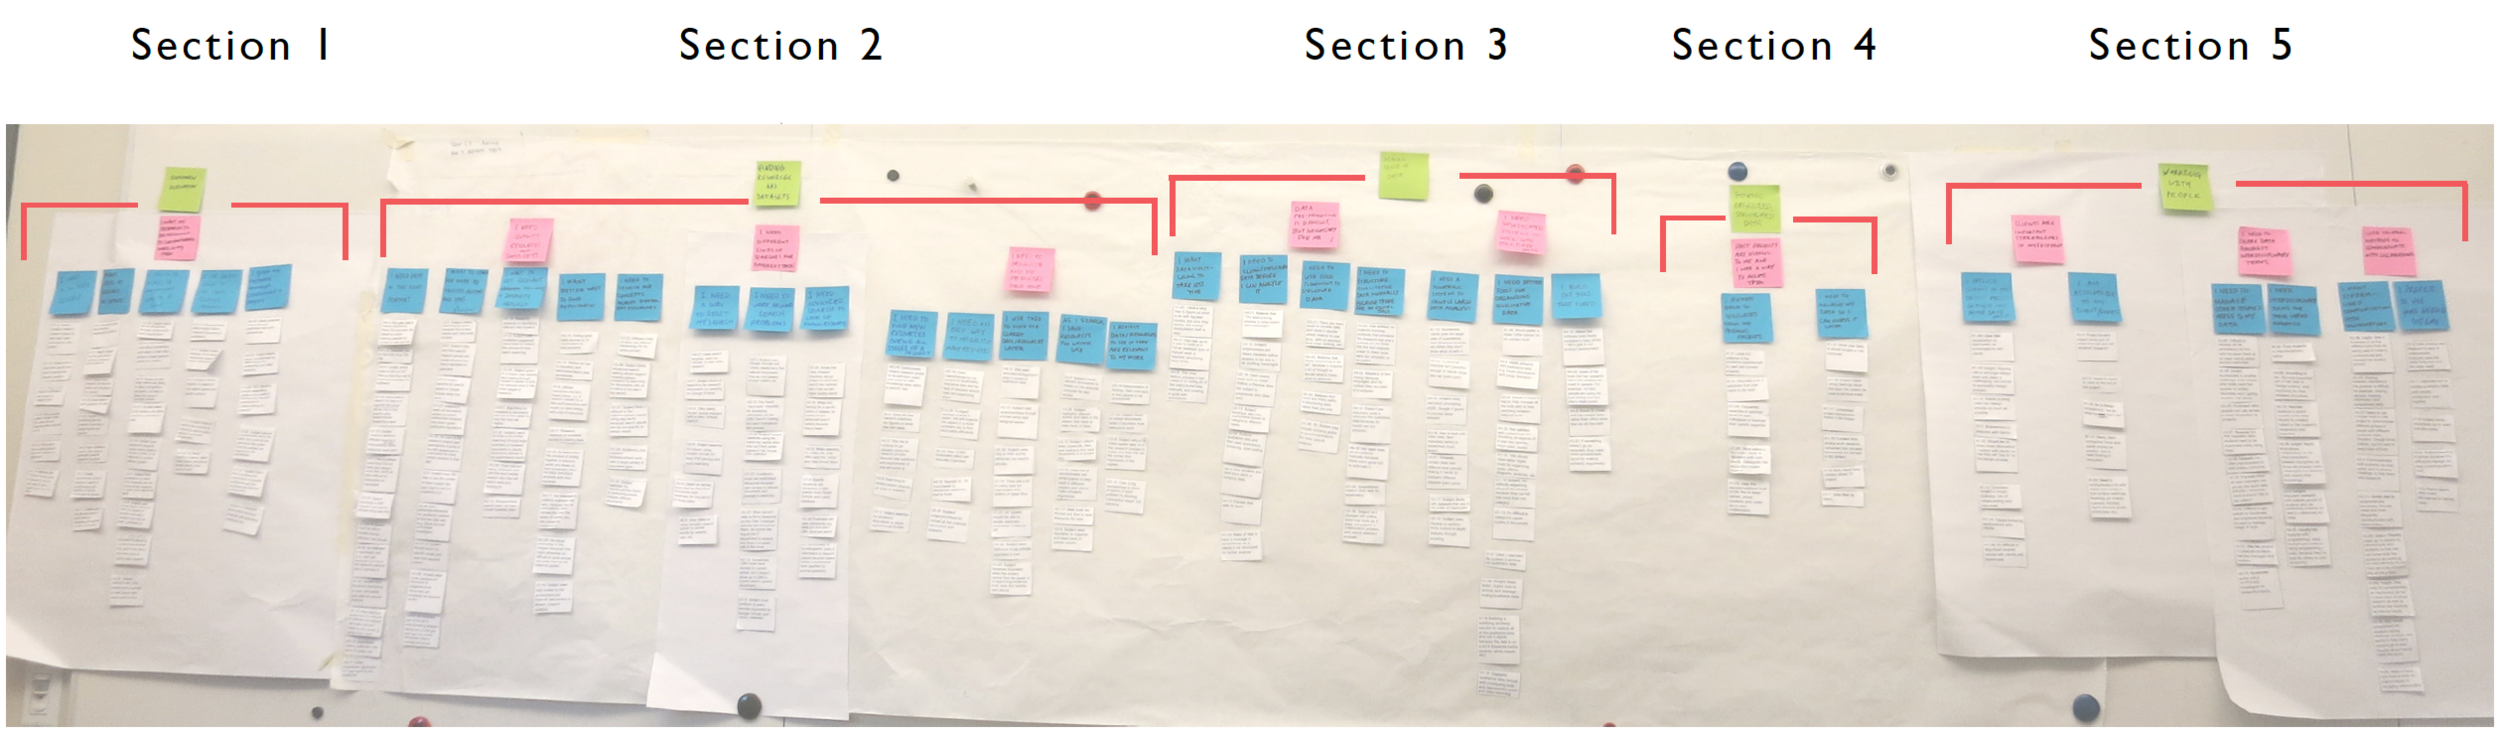 Overview of the Affinity Diagram